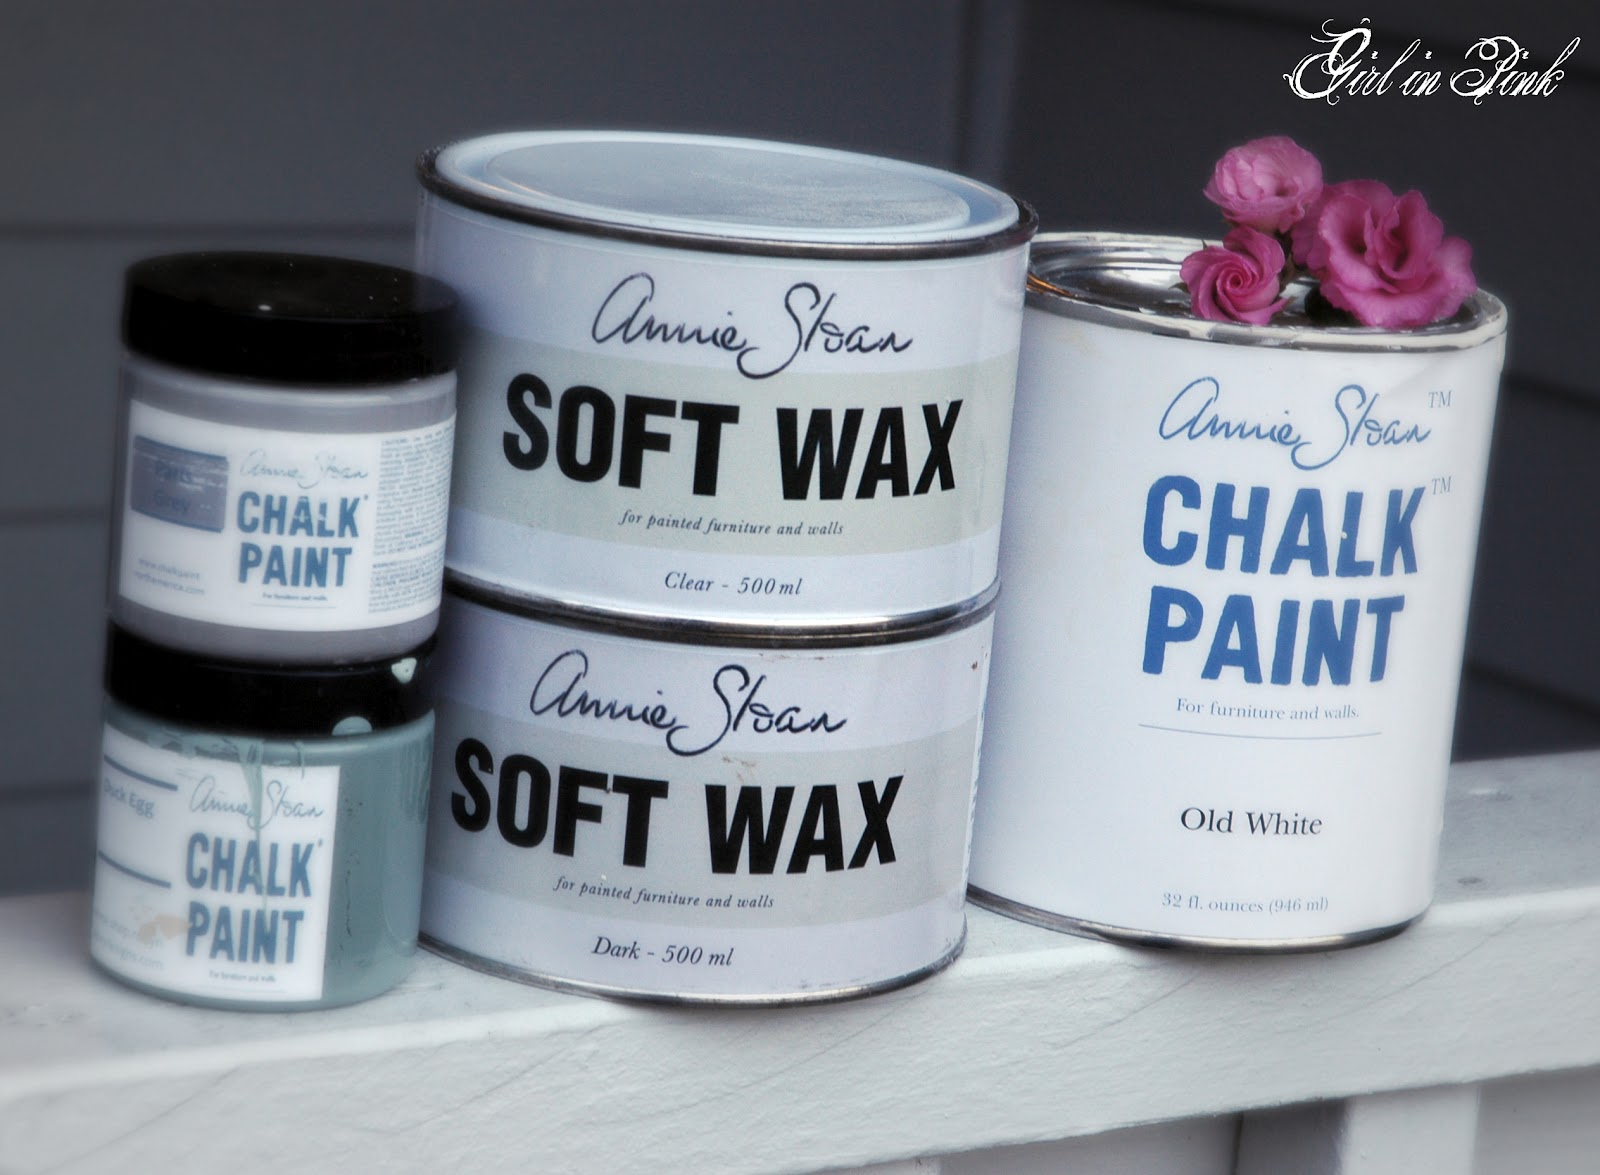 Apple box boutique inc christmas hours - Just Over A Month Ago I Purchased My First Quart Of Annie Sloan Chalk Paint As Much As I Wanted To Jump In With Both Feet And Order A Quart Of Each